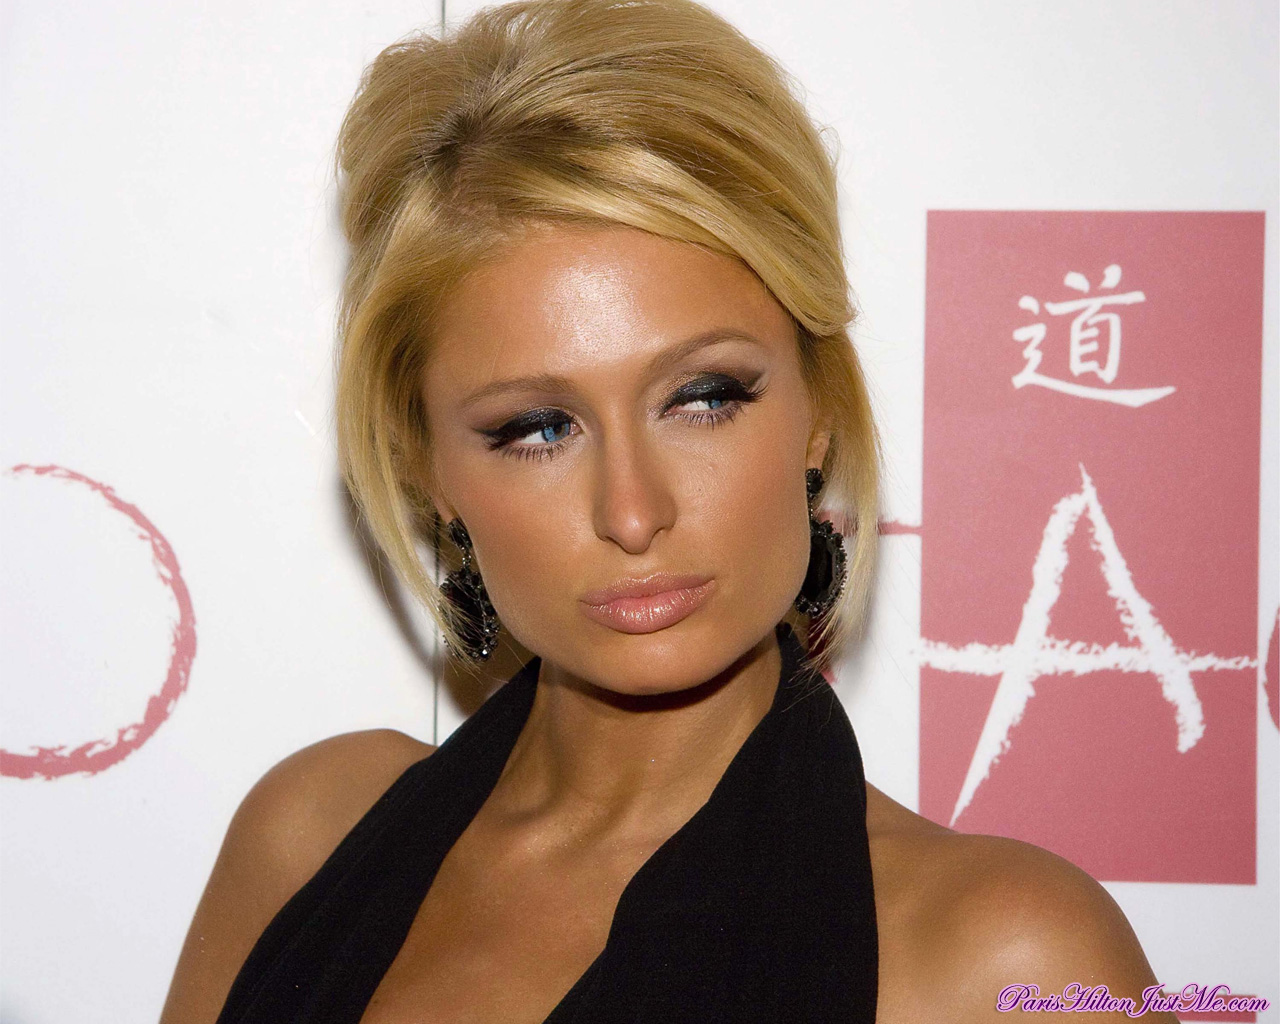 paris hilton 794684l FIFA World Cup 2010 | Nude Chinese Women In Body Paint Show